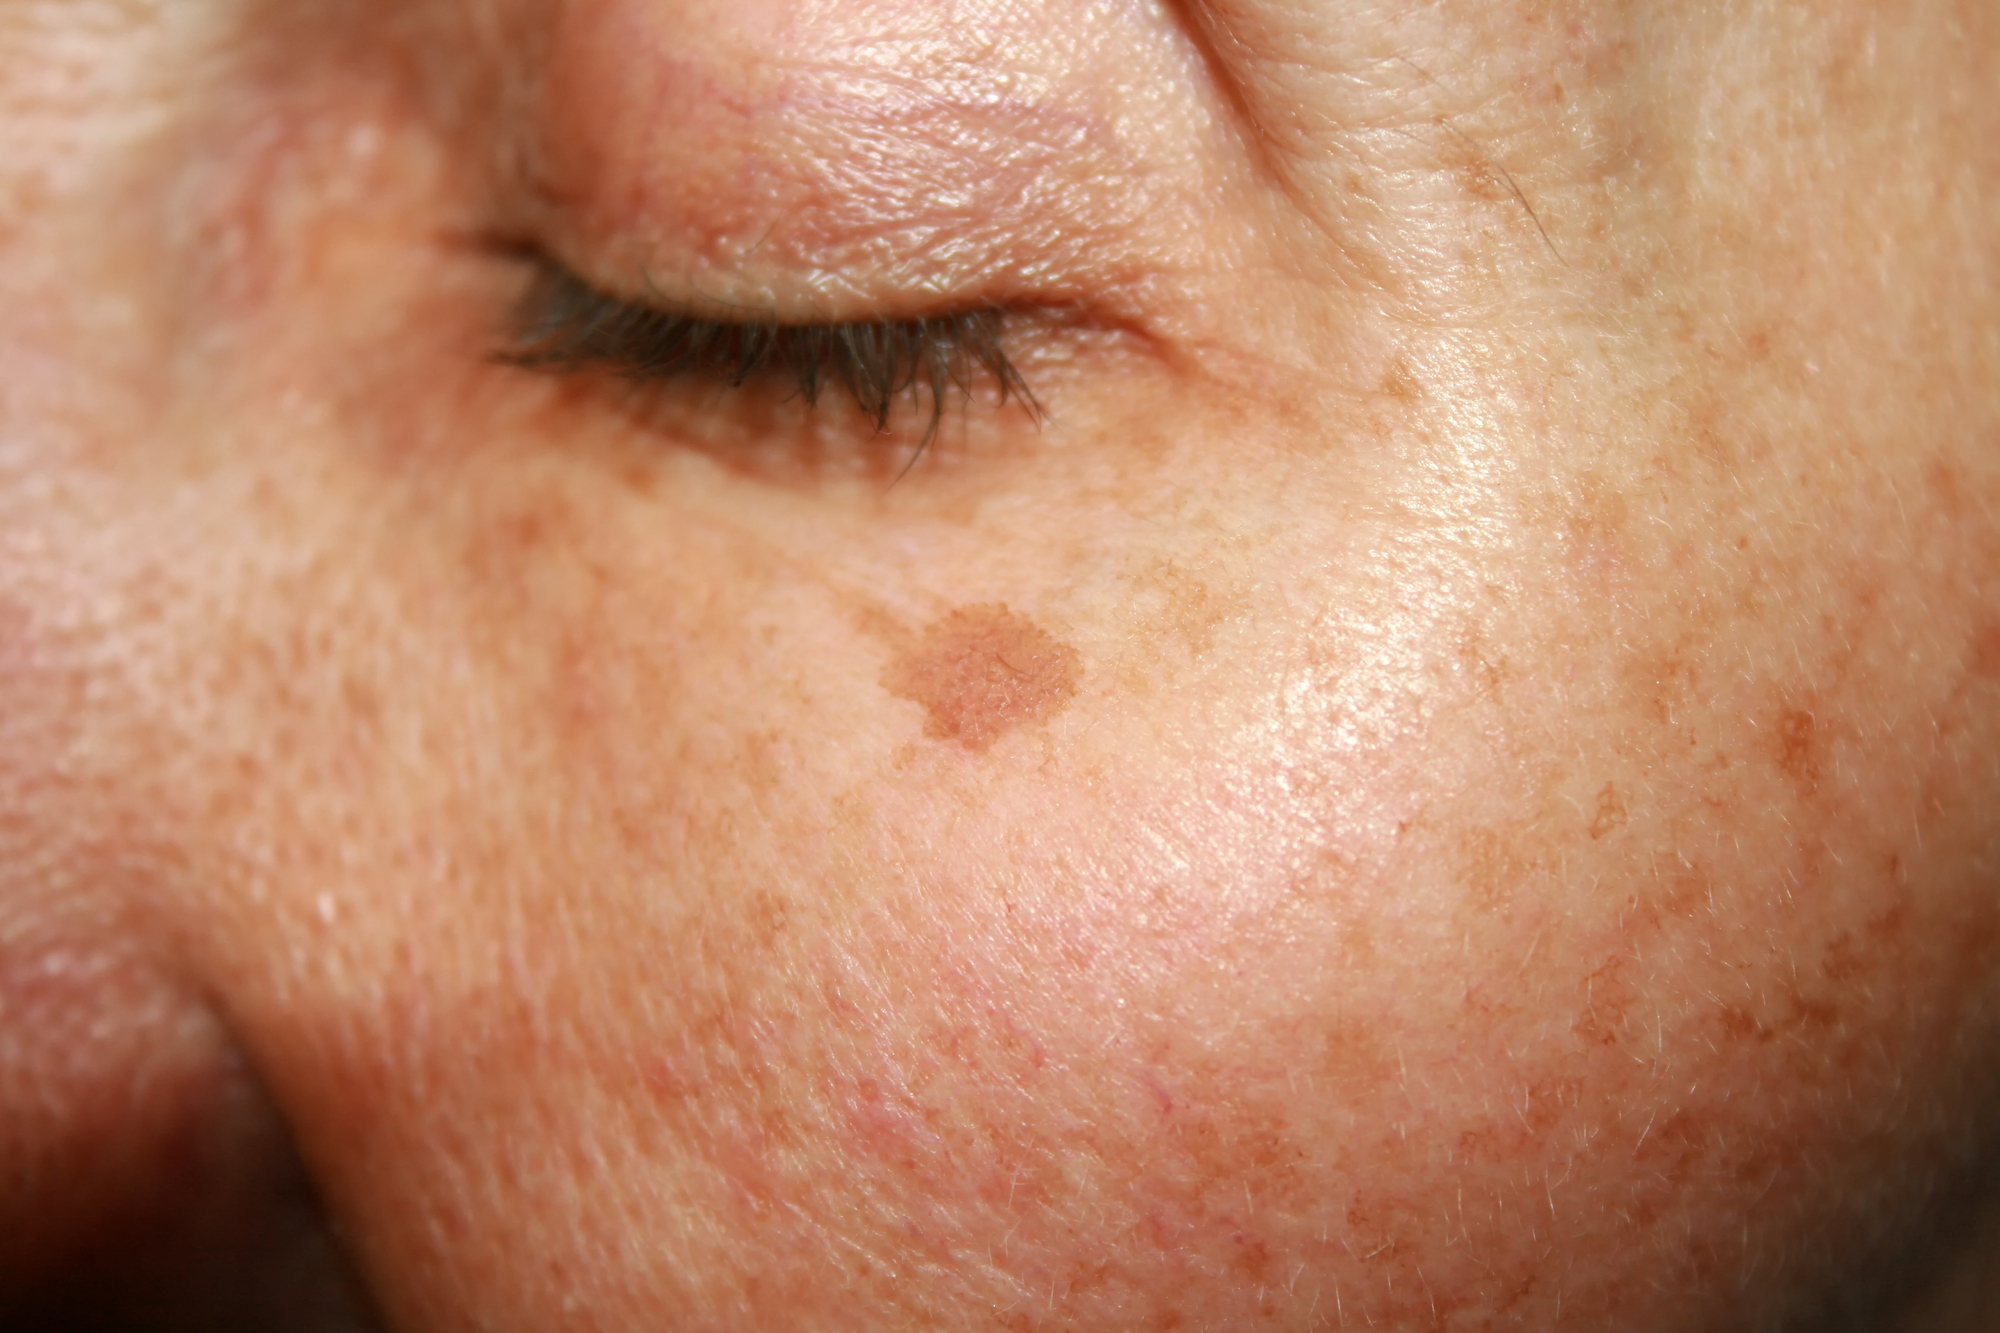 laser treatment for dark spots on the face and body